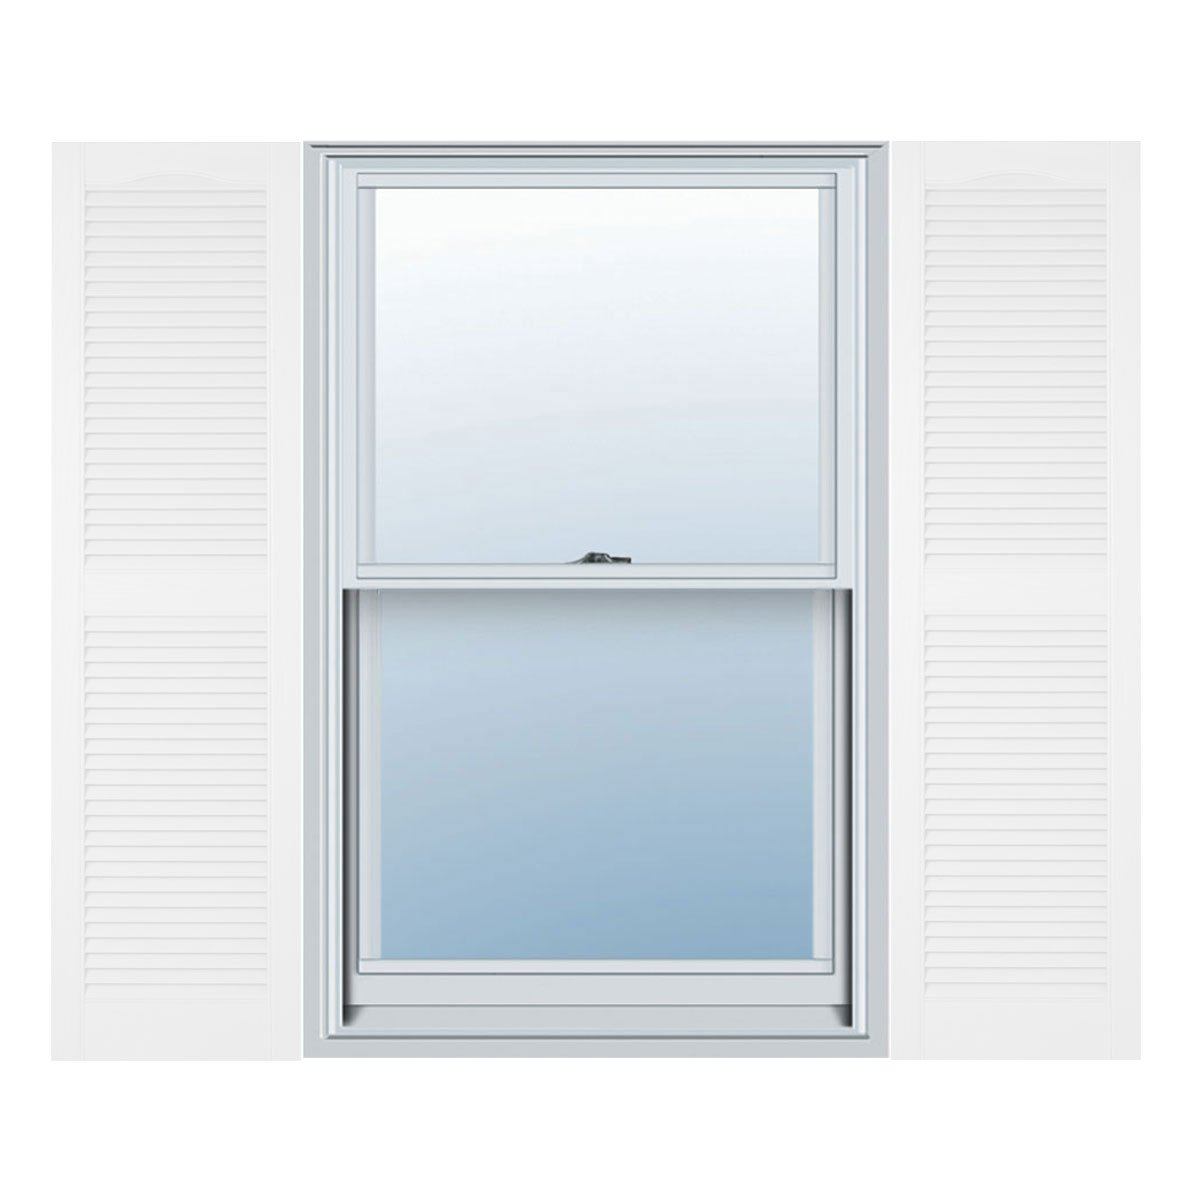 Builders Edge 12 in. Vinyl Louvered Shutters in Bright White - Set of 2 (12 in. W x 1 in. D x 31 in. H (3.26 lbs.))